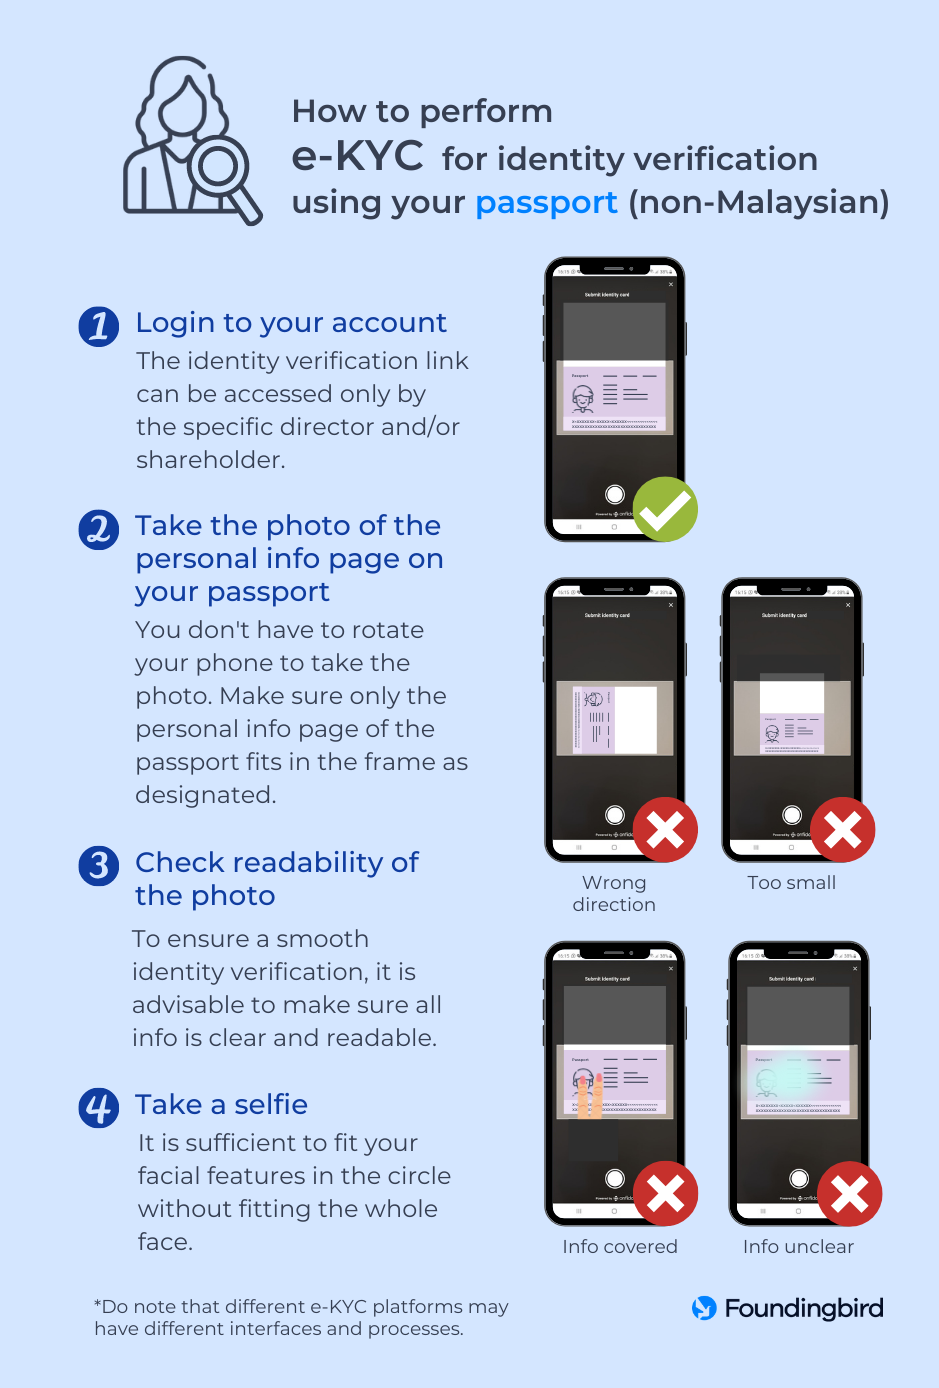 How to perform e-KYC for identity verification using a passport for non-Malaysians.